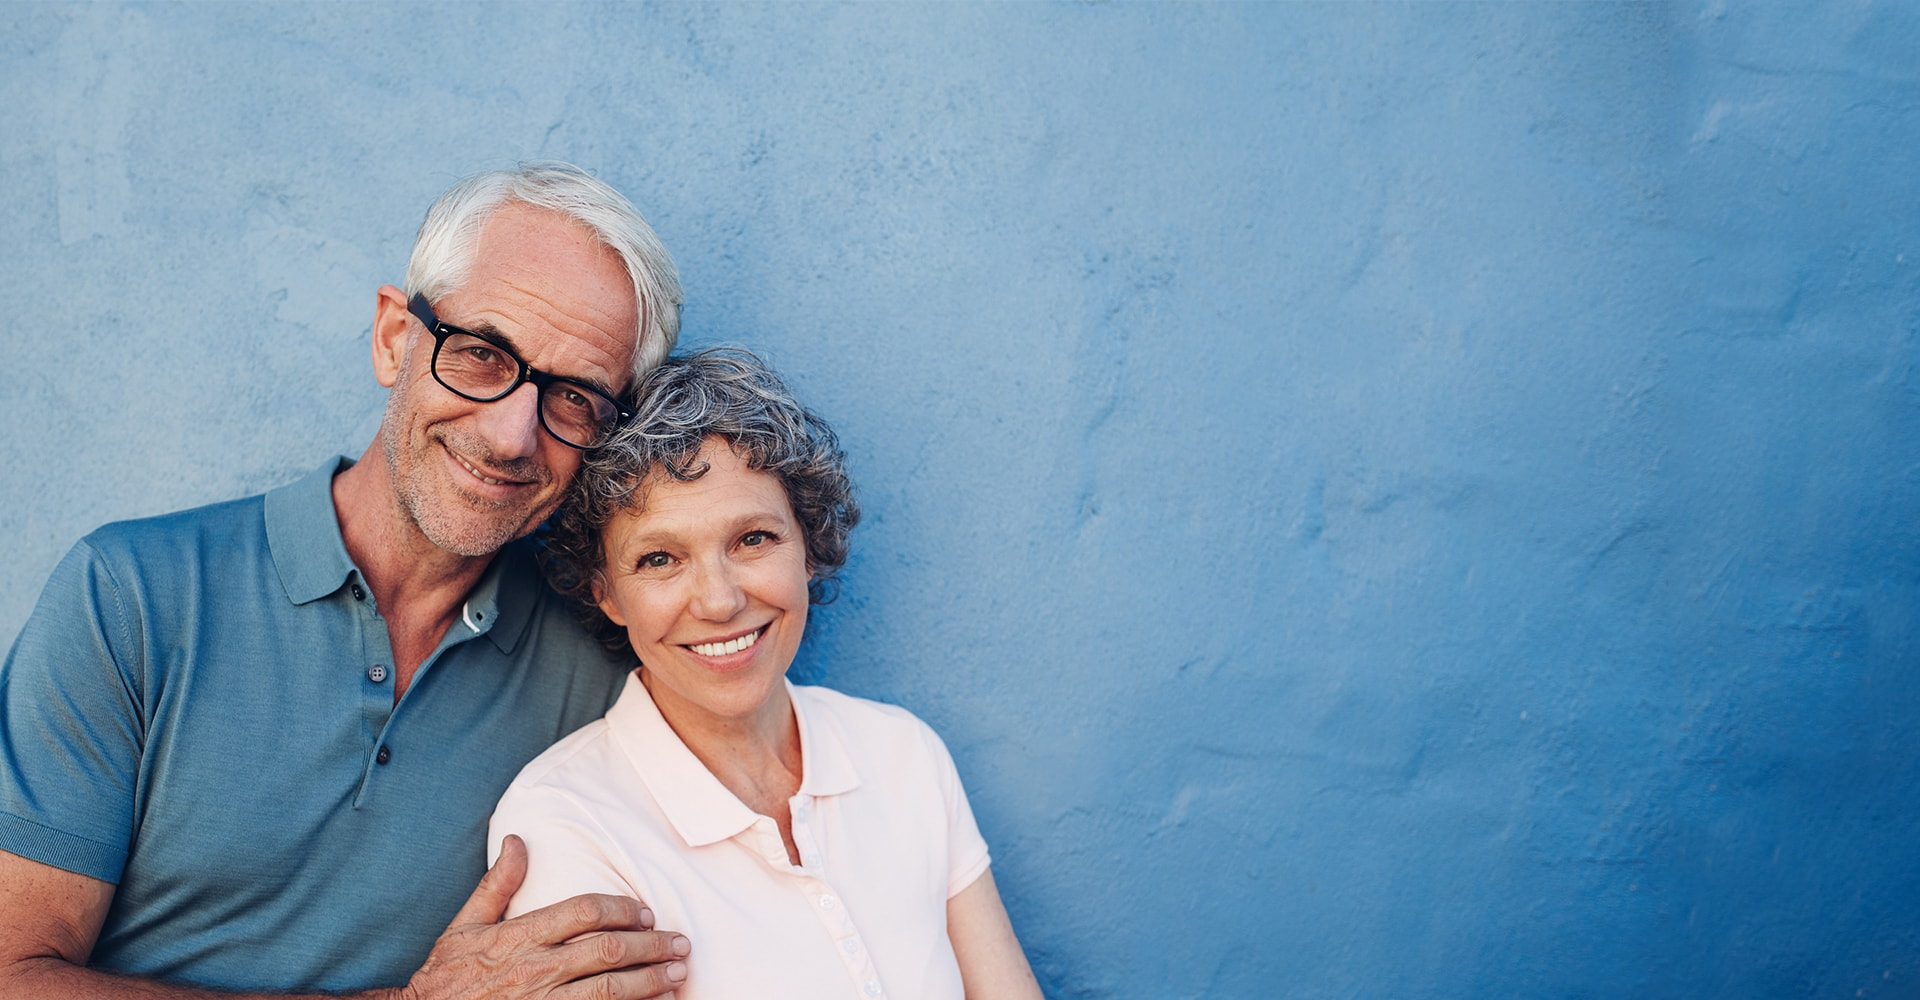 An older couple leaning against a blue wall smiling to show how dental implants from our Bellevue dentist can transform your smile